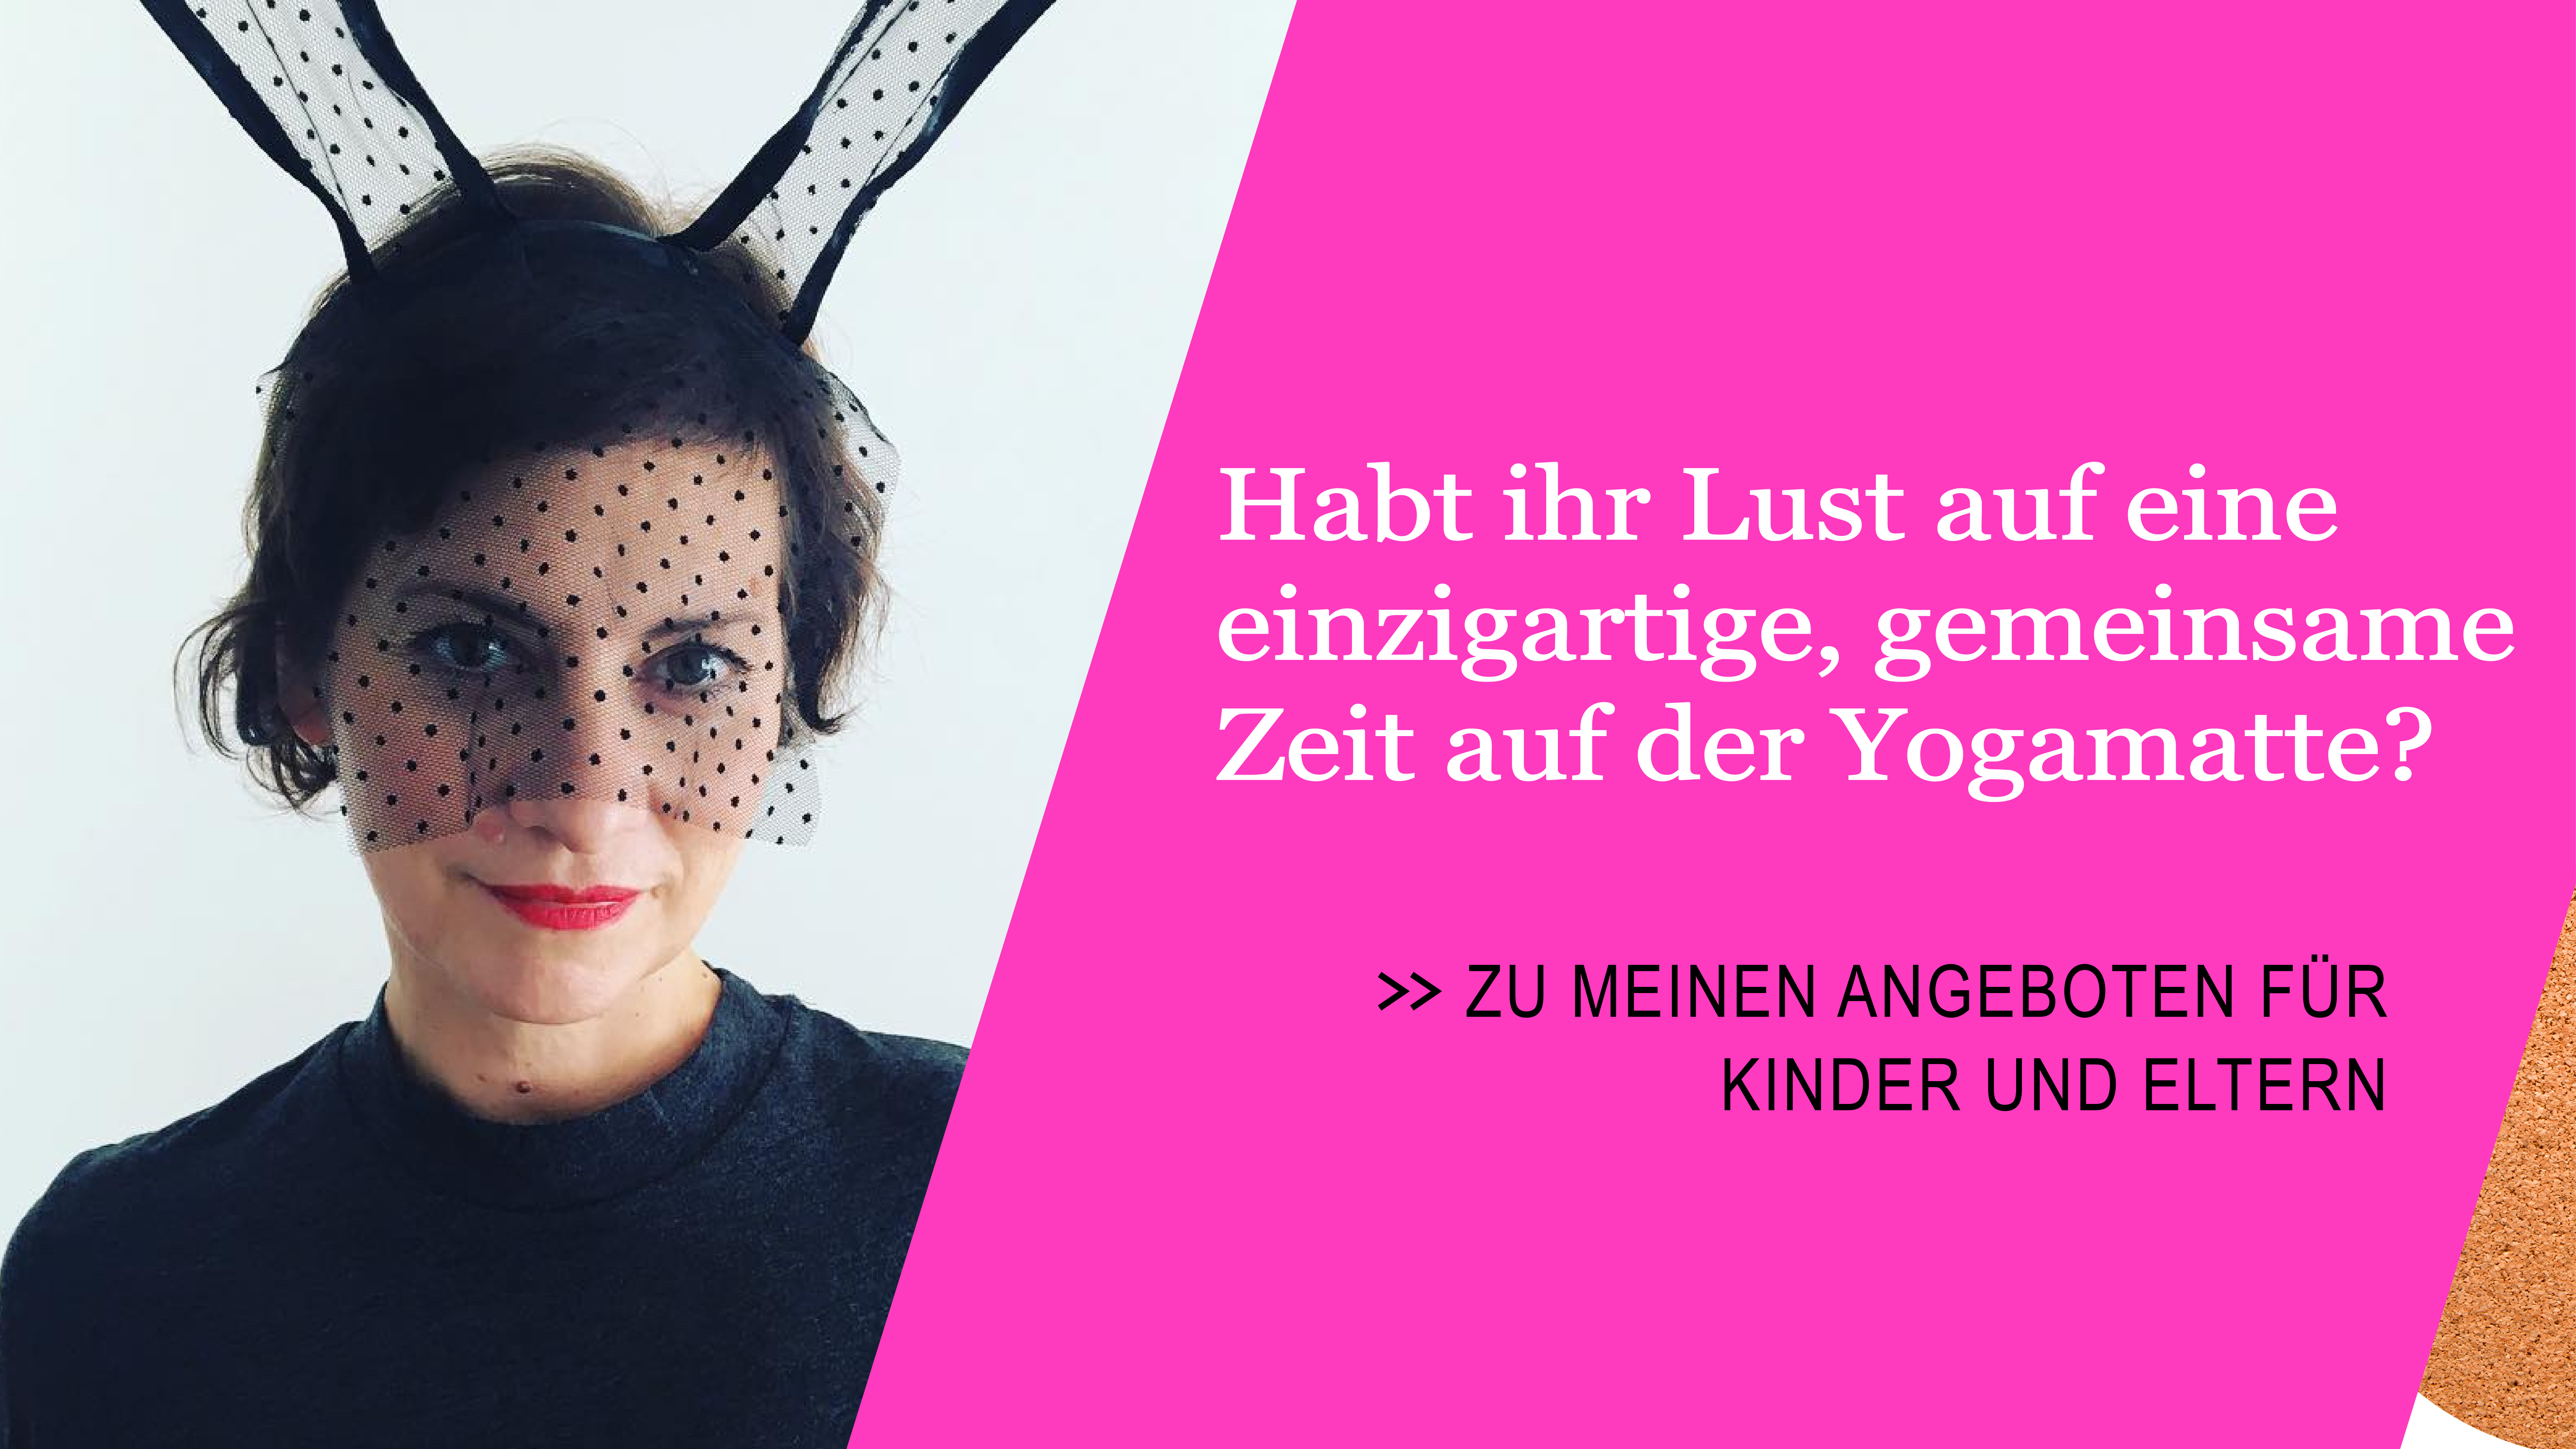 Kinderyoga Berlin Slider 1